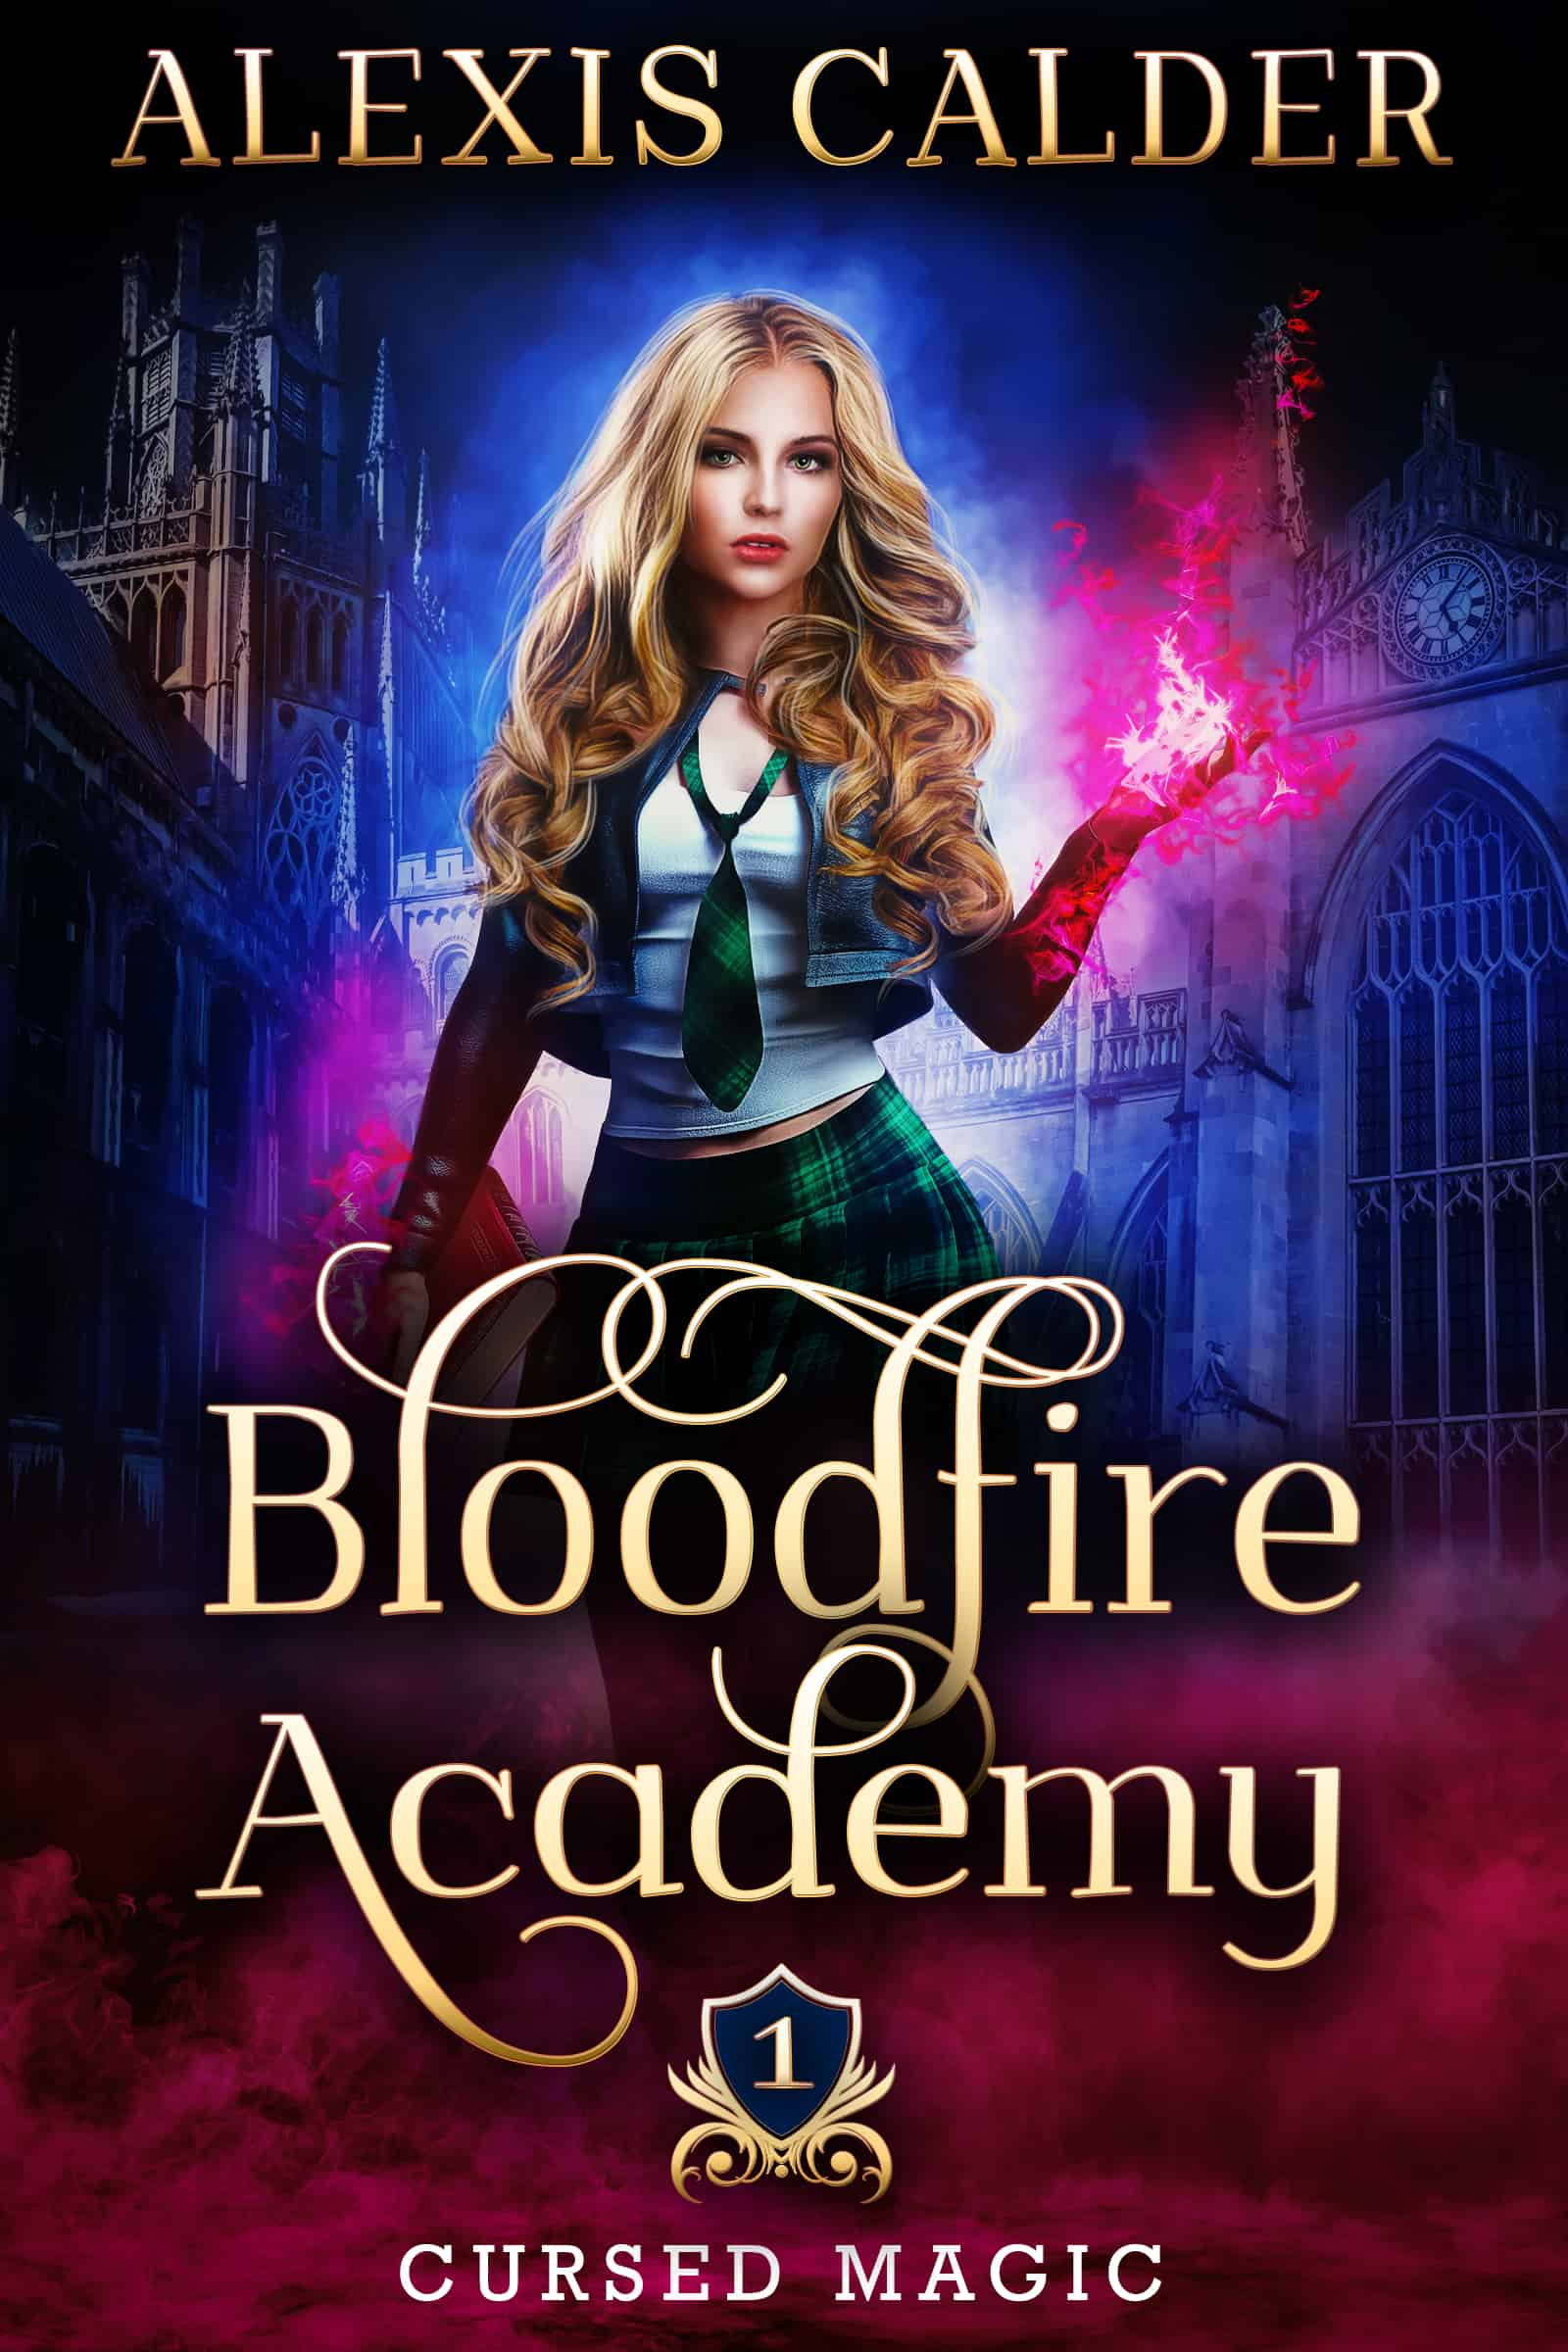 Bloodfire Academy 1 by Alexis Calder